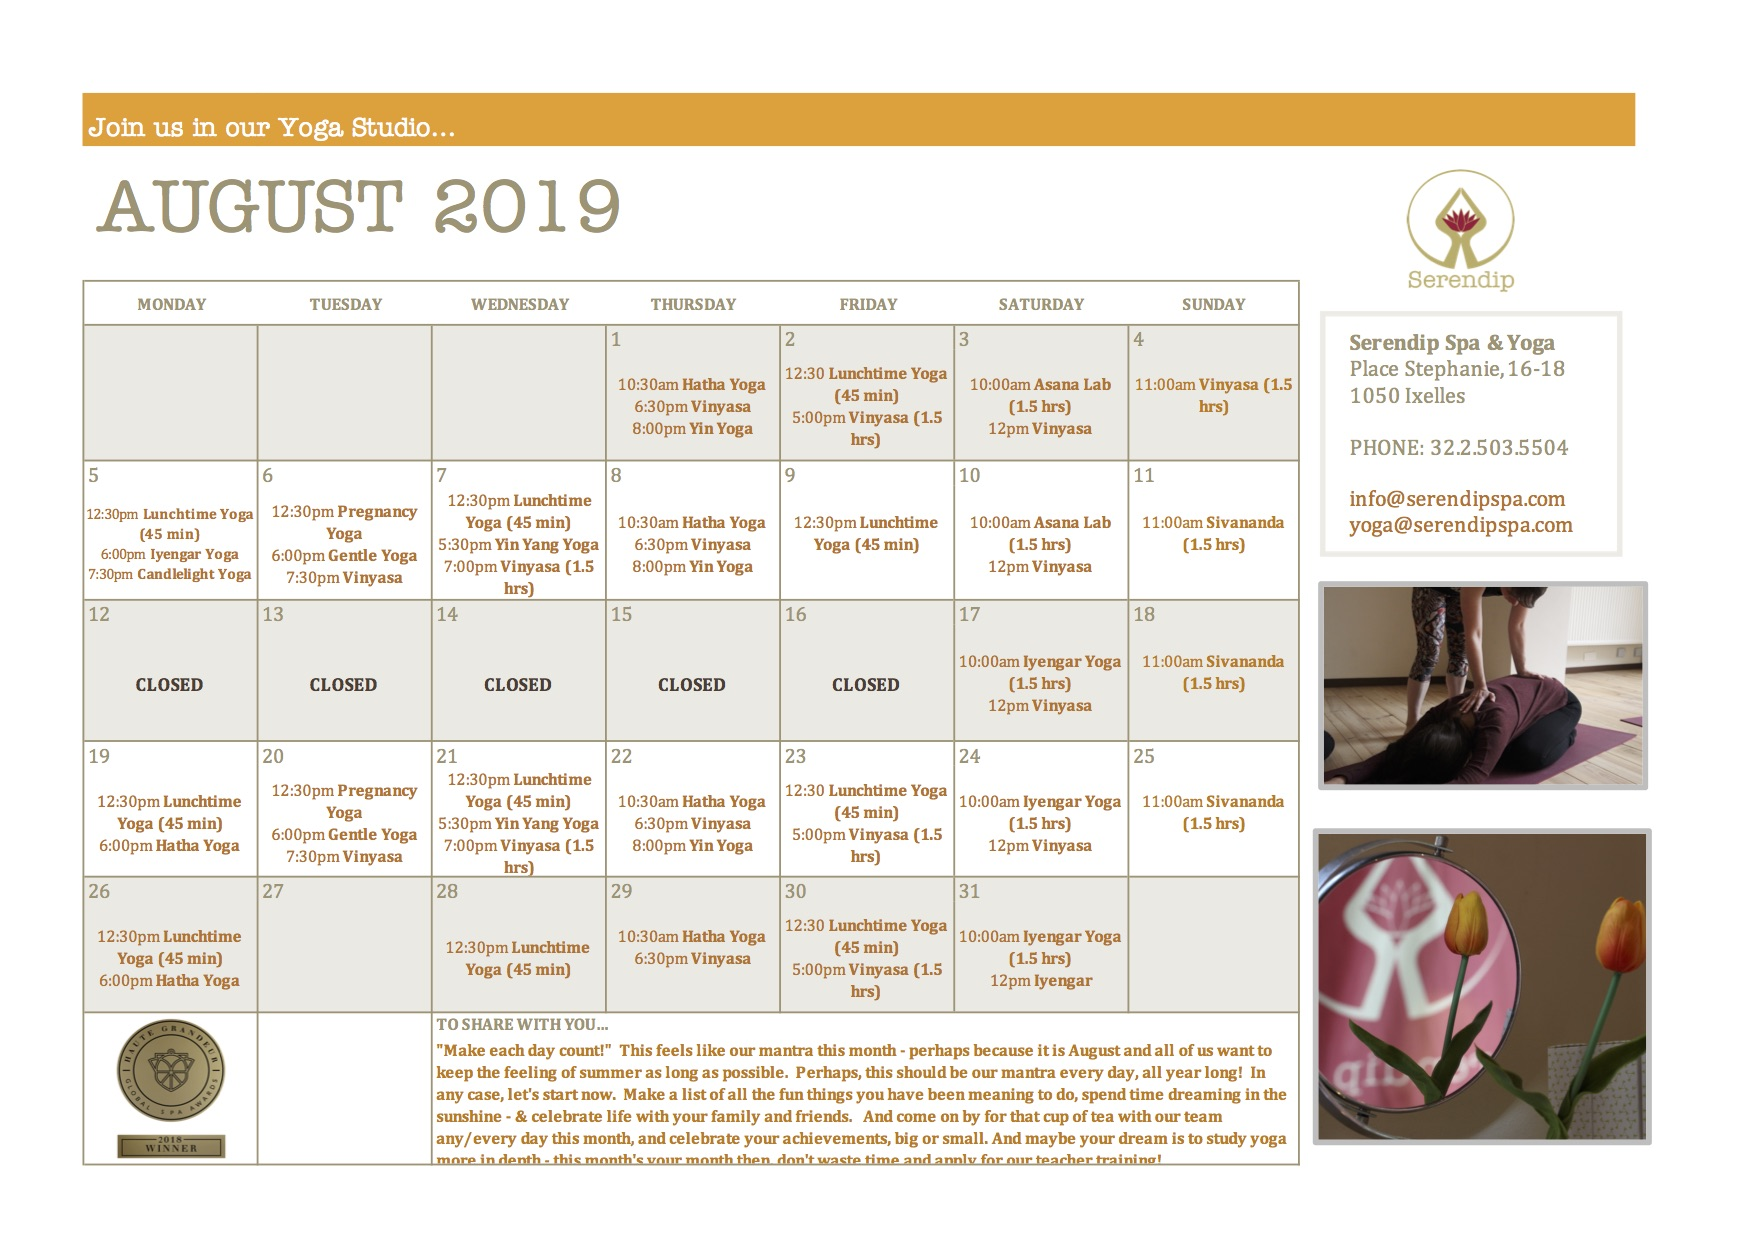 serendip spa and yoga calendar 2019_August A4 FRONT.jpg